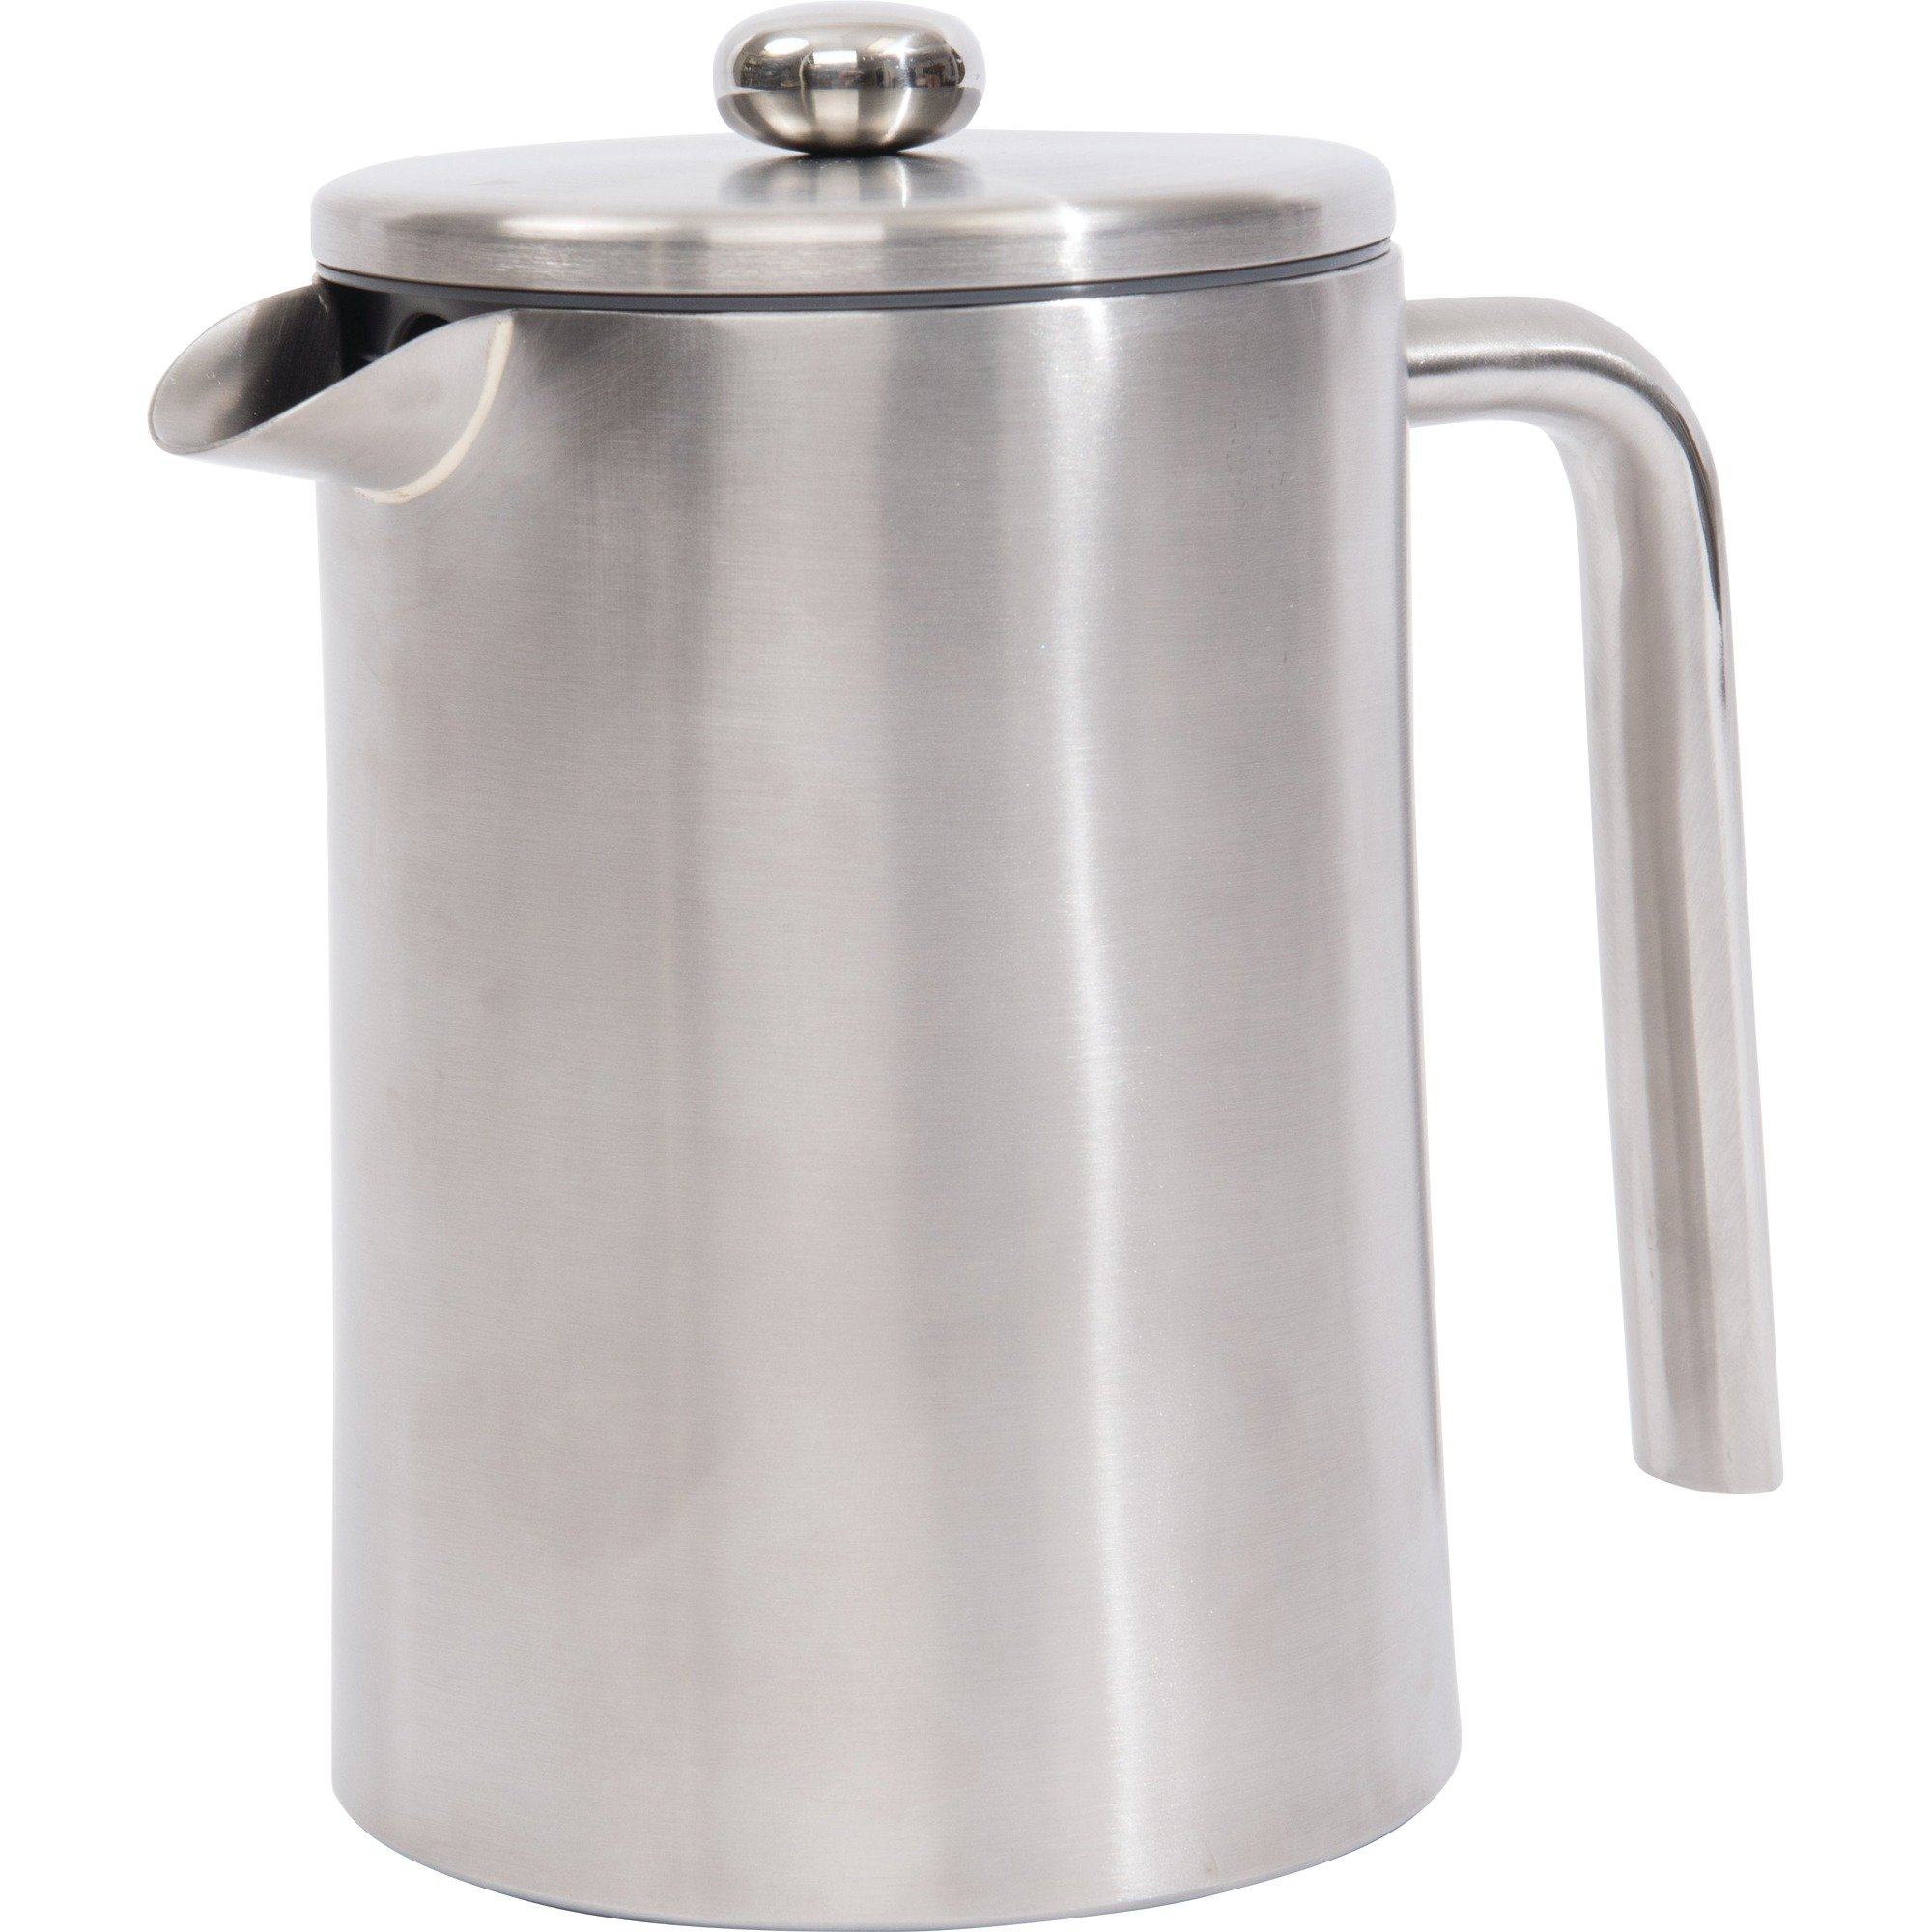 Wyndham House 1.2L (40.5oz) Double Wall Stainless Steel (304) French Press